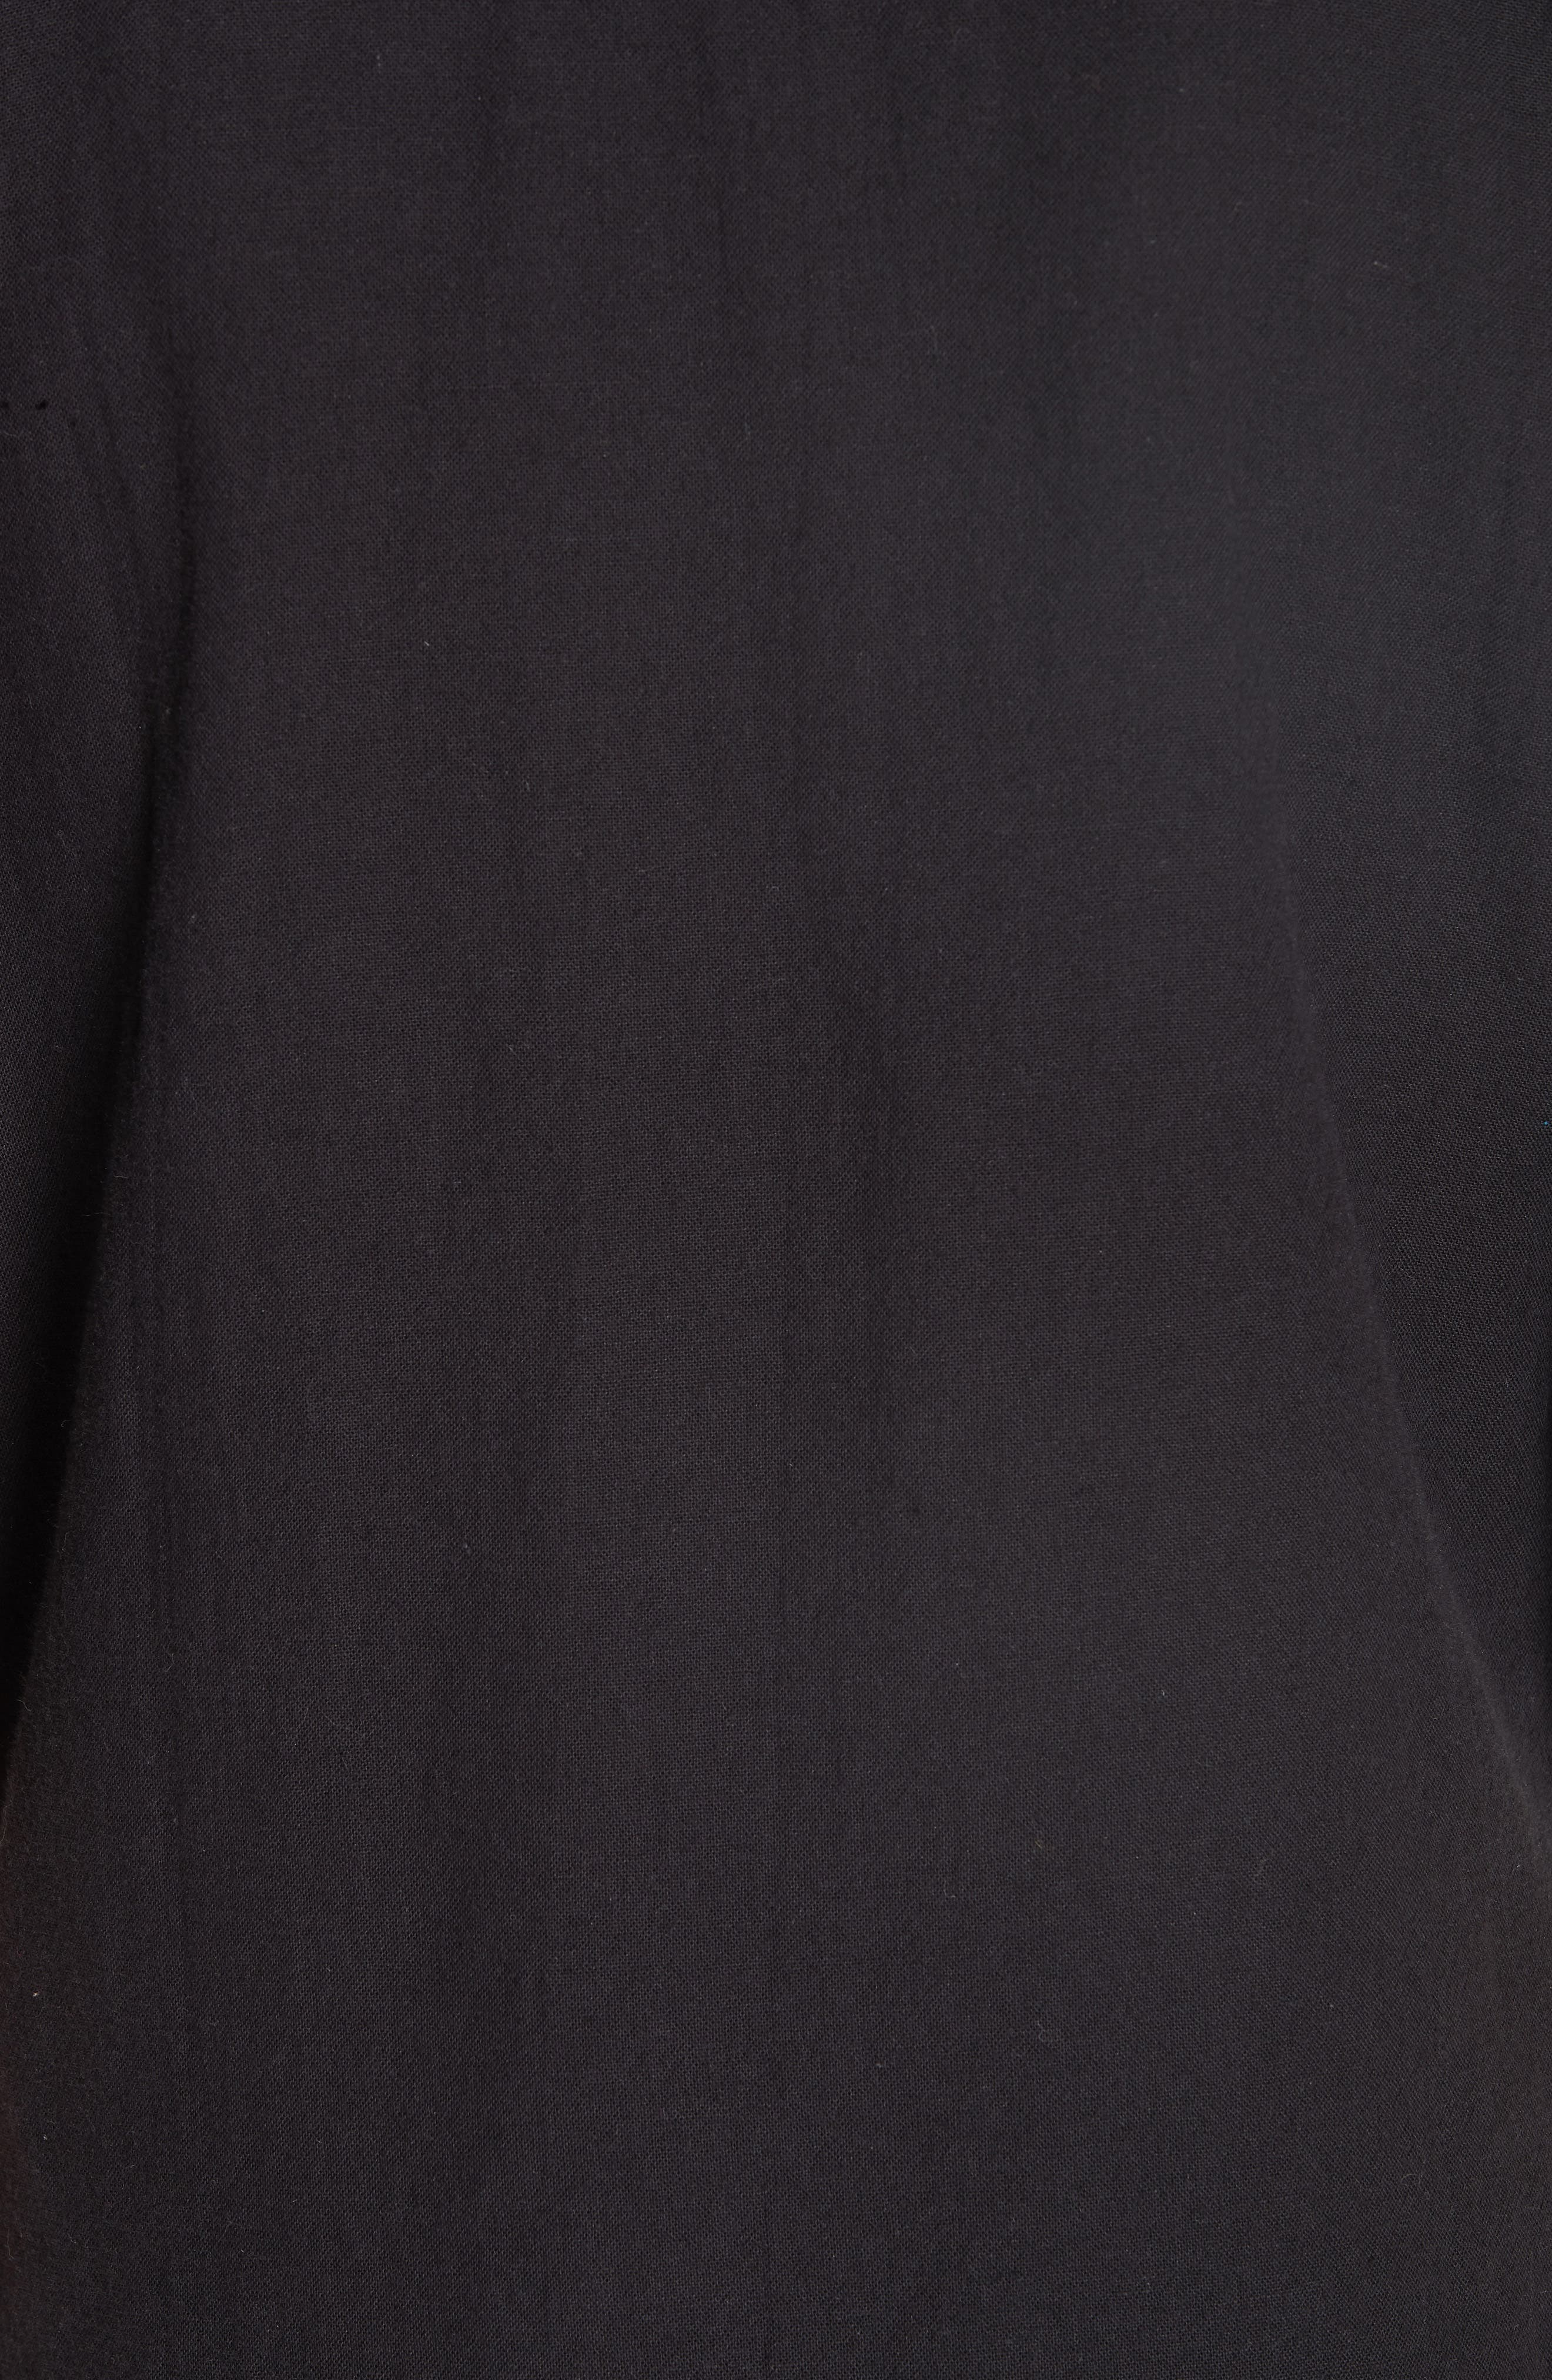 Kimono Sleeve Organic Cotton Blend Jacket,                             Alternate thumbnail 3, color,                             Black